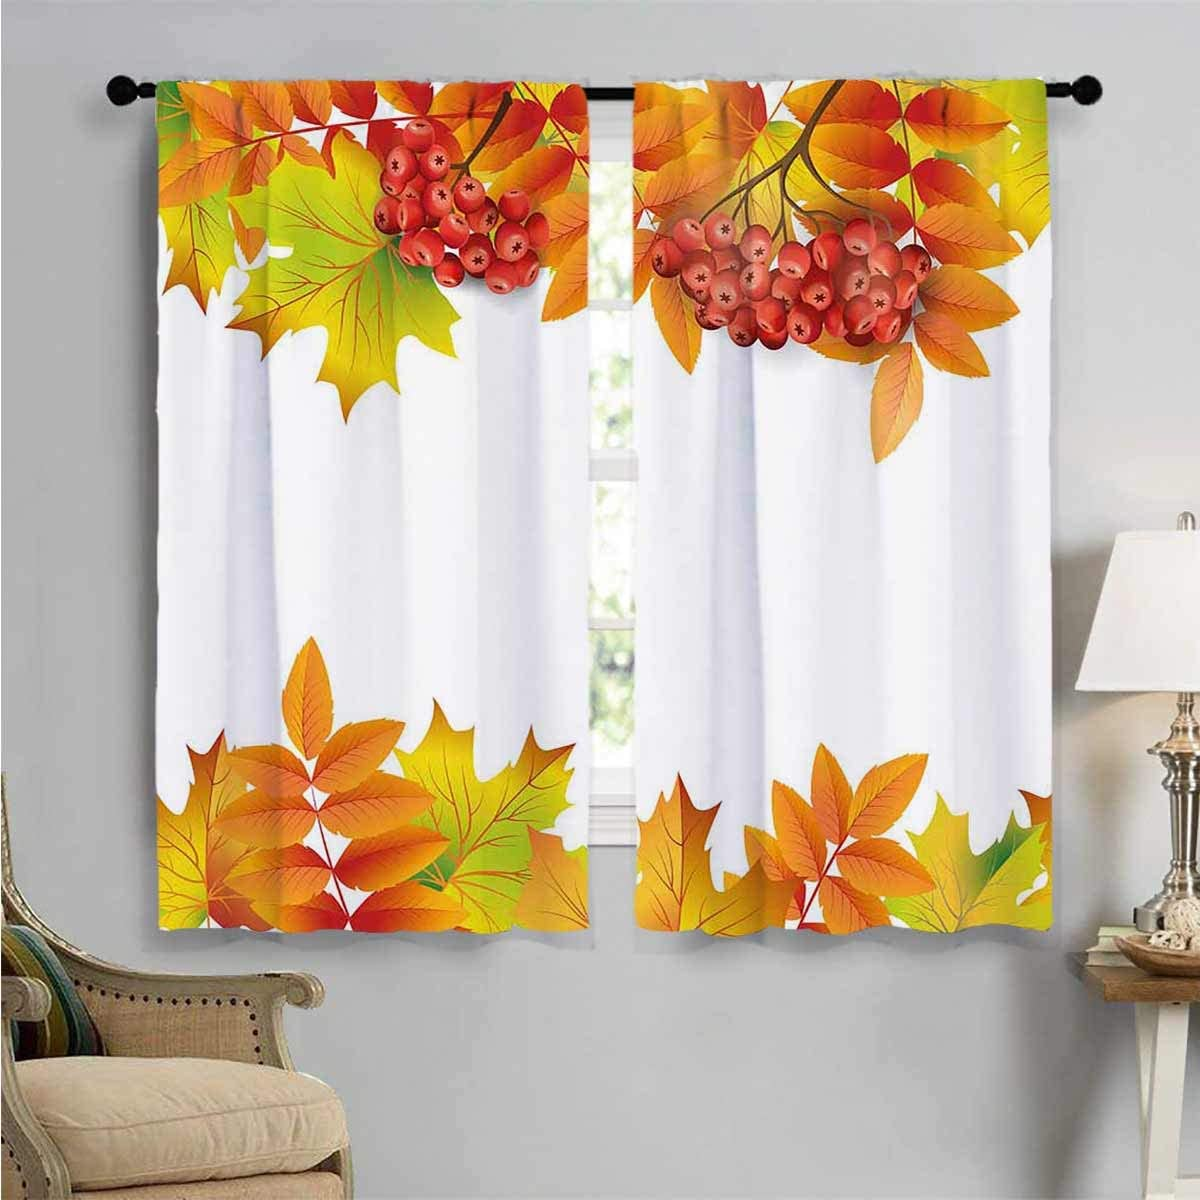 Bedroom Curtains Autumn Branches by OFFer Border Decor Louisville-Jefferson County Mall W84